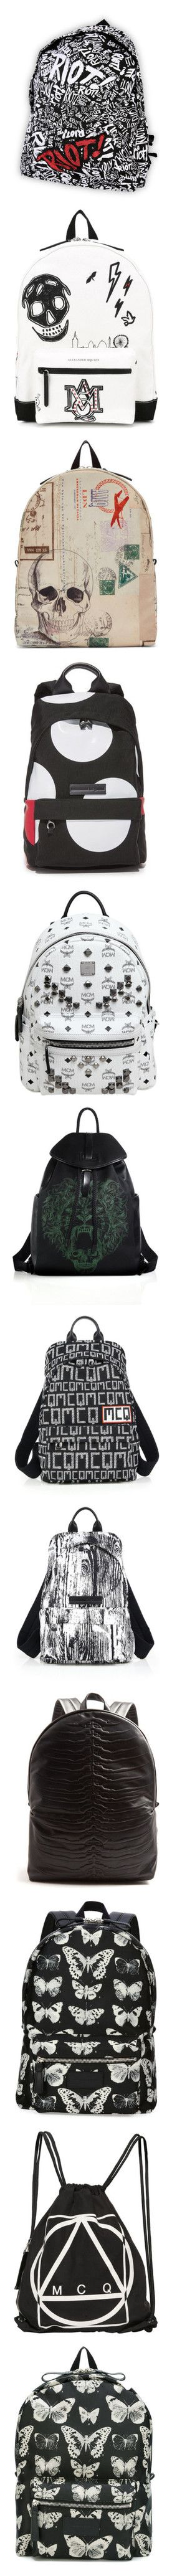 """Backpacks"" by aarabbit44 on Polyvore featuring bags, backpacks, accessories, paramore, logo bags, pattern bag, print backpacks, backpack bags, day pack backpack and men's fashion"